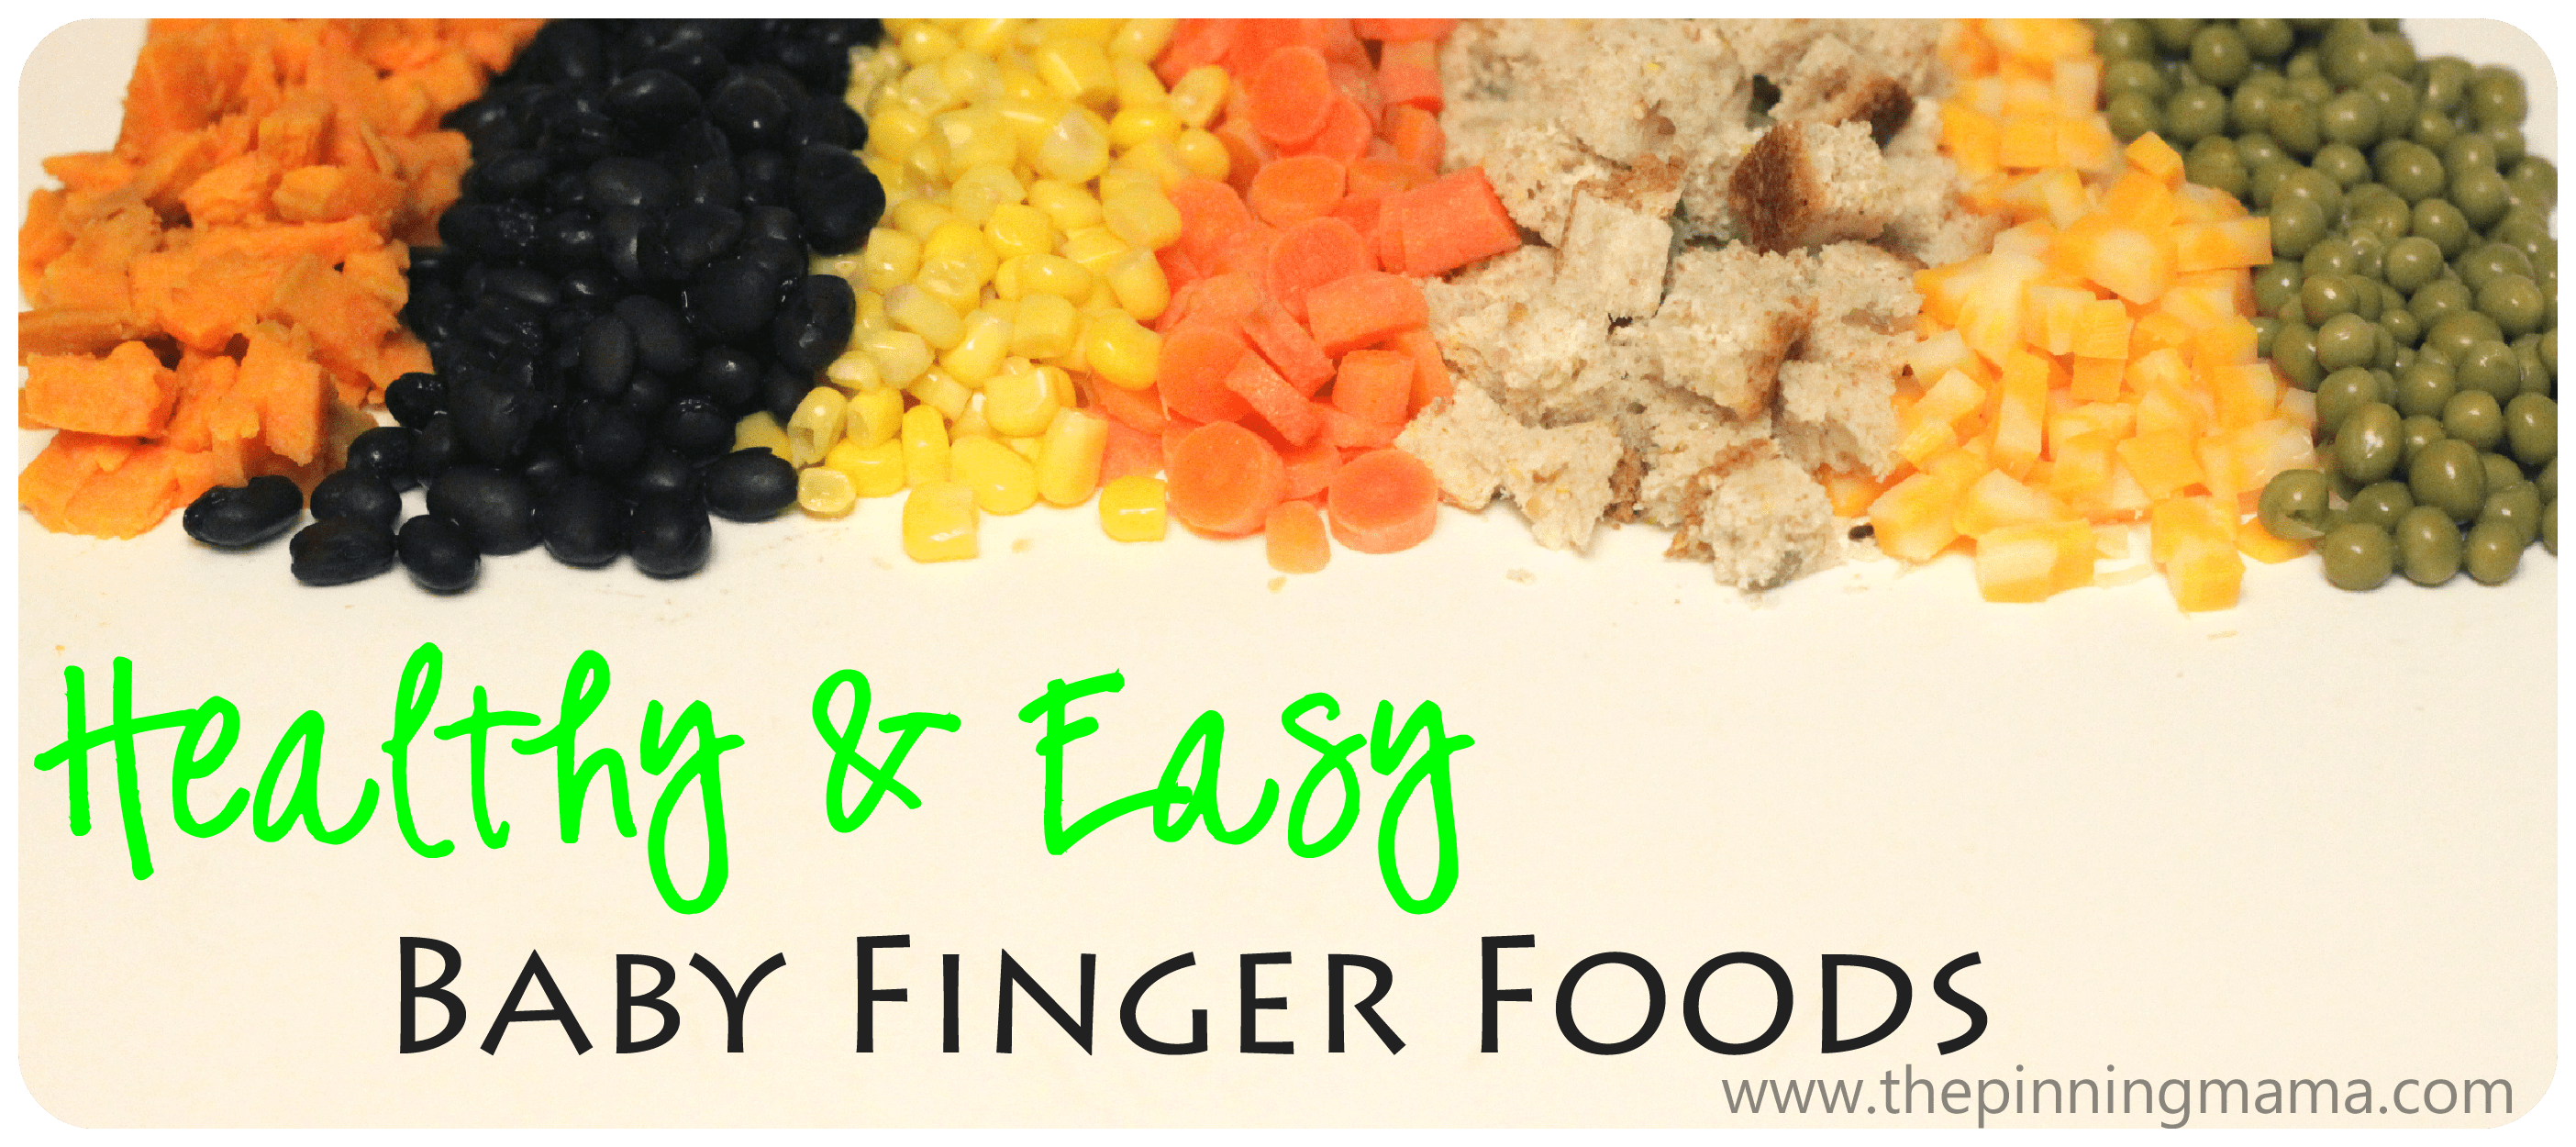 Healthy and easy baby finger foods printable the pinning mama forumfinder Gallery